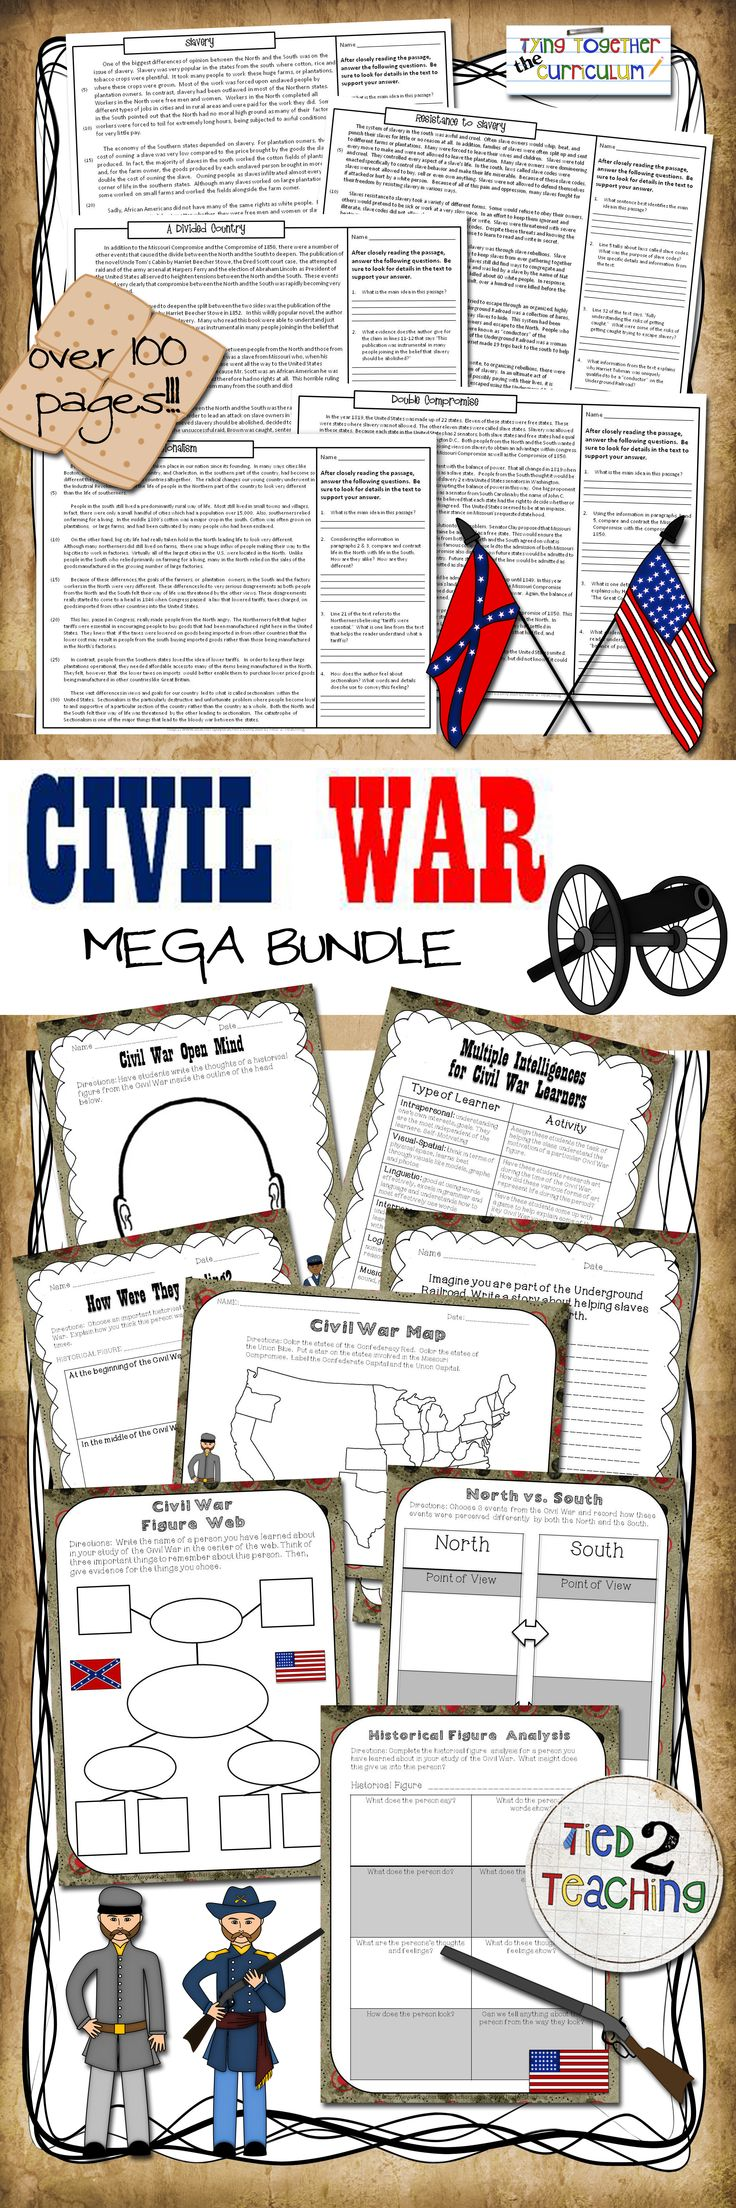 Close Reading (Civil War) Giant 3-in-1 Value Bundle is a must have for every teacher trying to get in all those Common Core Standards while at the same time work through a unit on the American Civil War!  These close reading packs includes 10 close reading informational passages on a variety of highly tested topics pertaining to events surrounding the Civil War. Each prompt drives students back to the text asking them to use information to support their answer from the text.